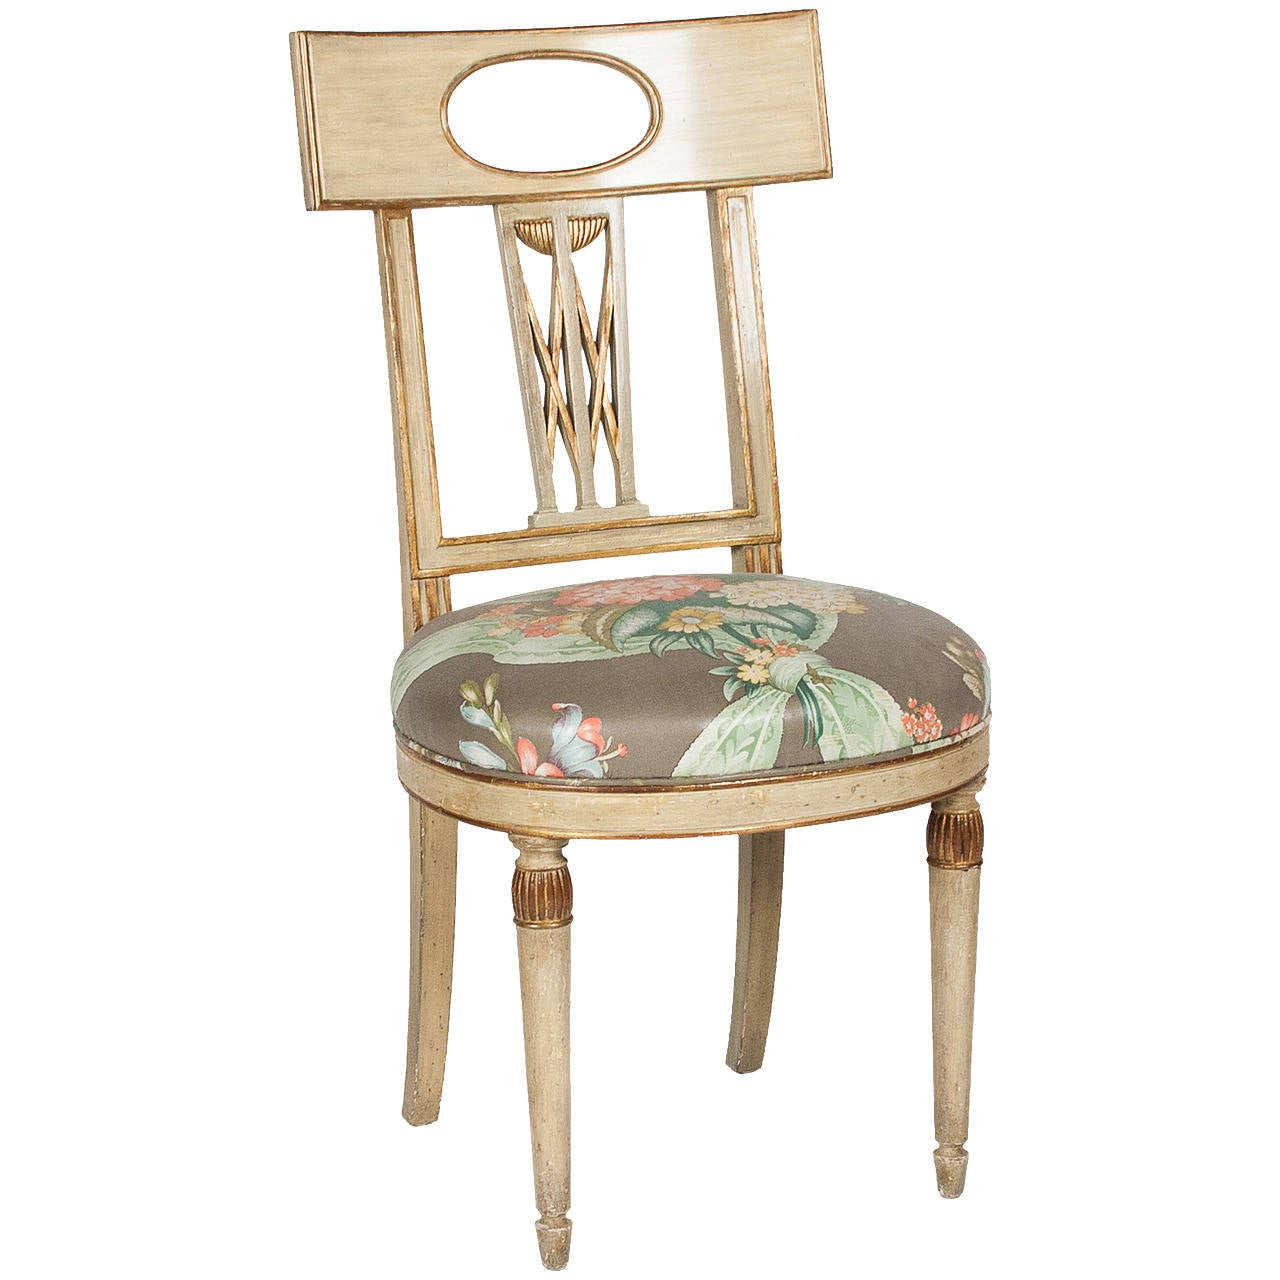 Single Neoclassical Style Painted Wood Chair French 1920s At 1stdibs. Full resolution‎  picture, nominally Width 1280 Height 1280 pixels, picture with #916A3A.